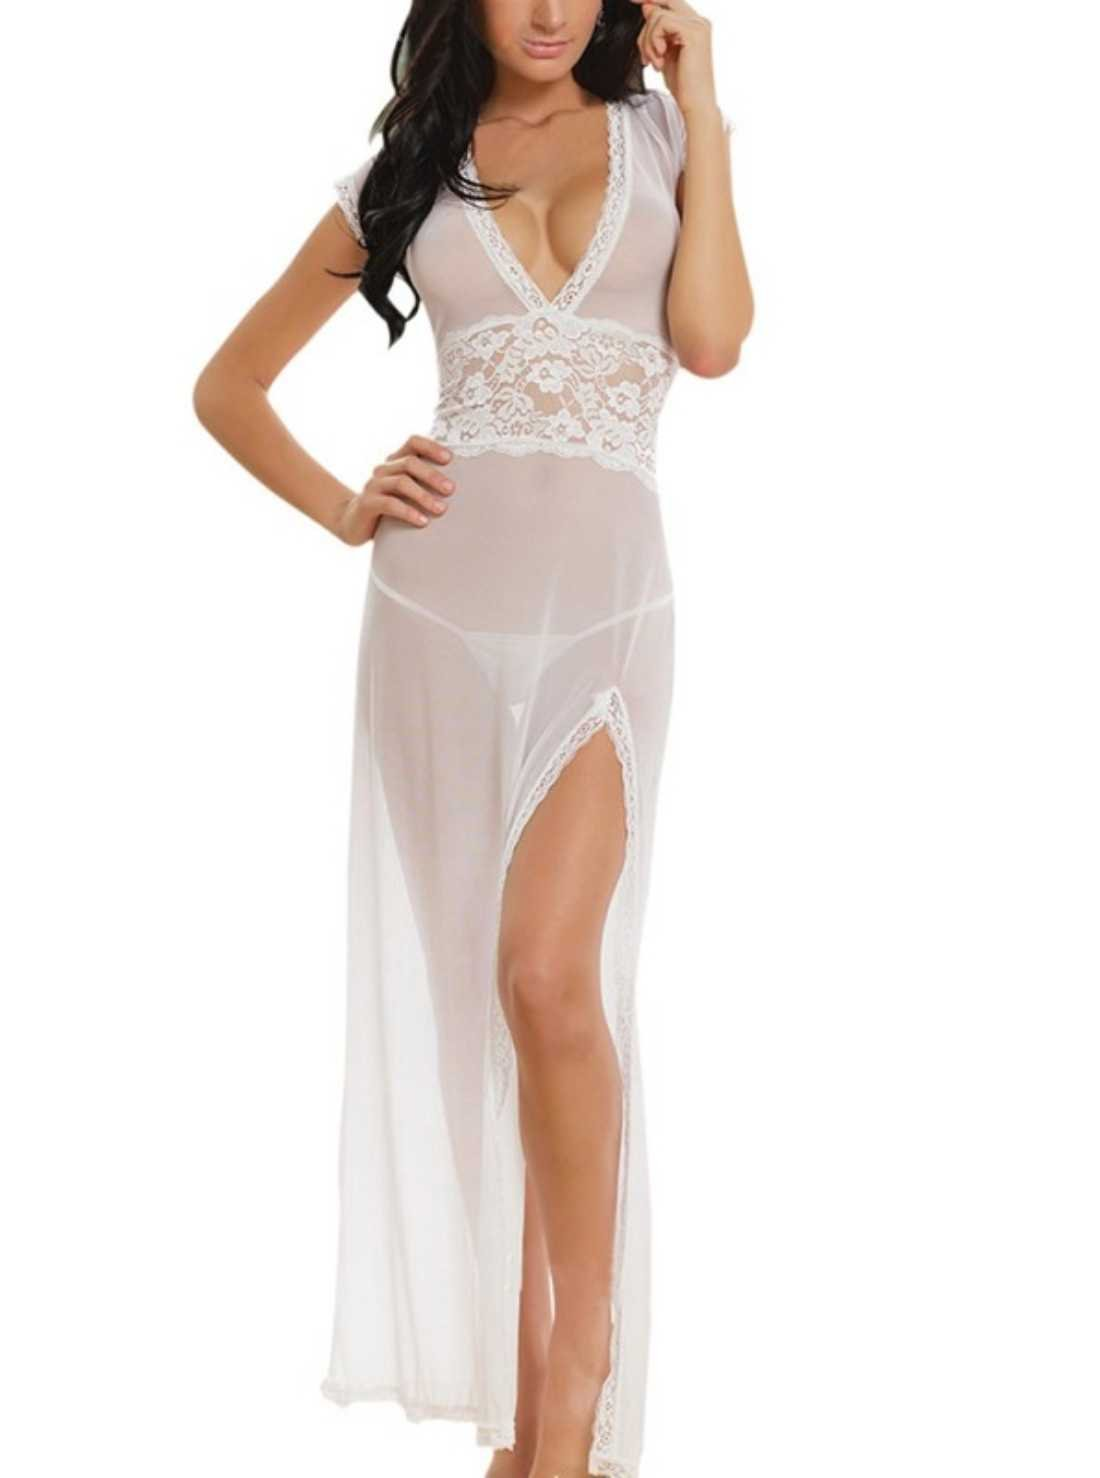 White Transparent Night Gown